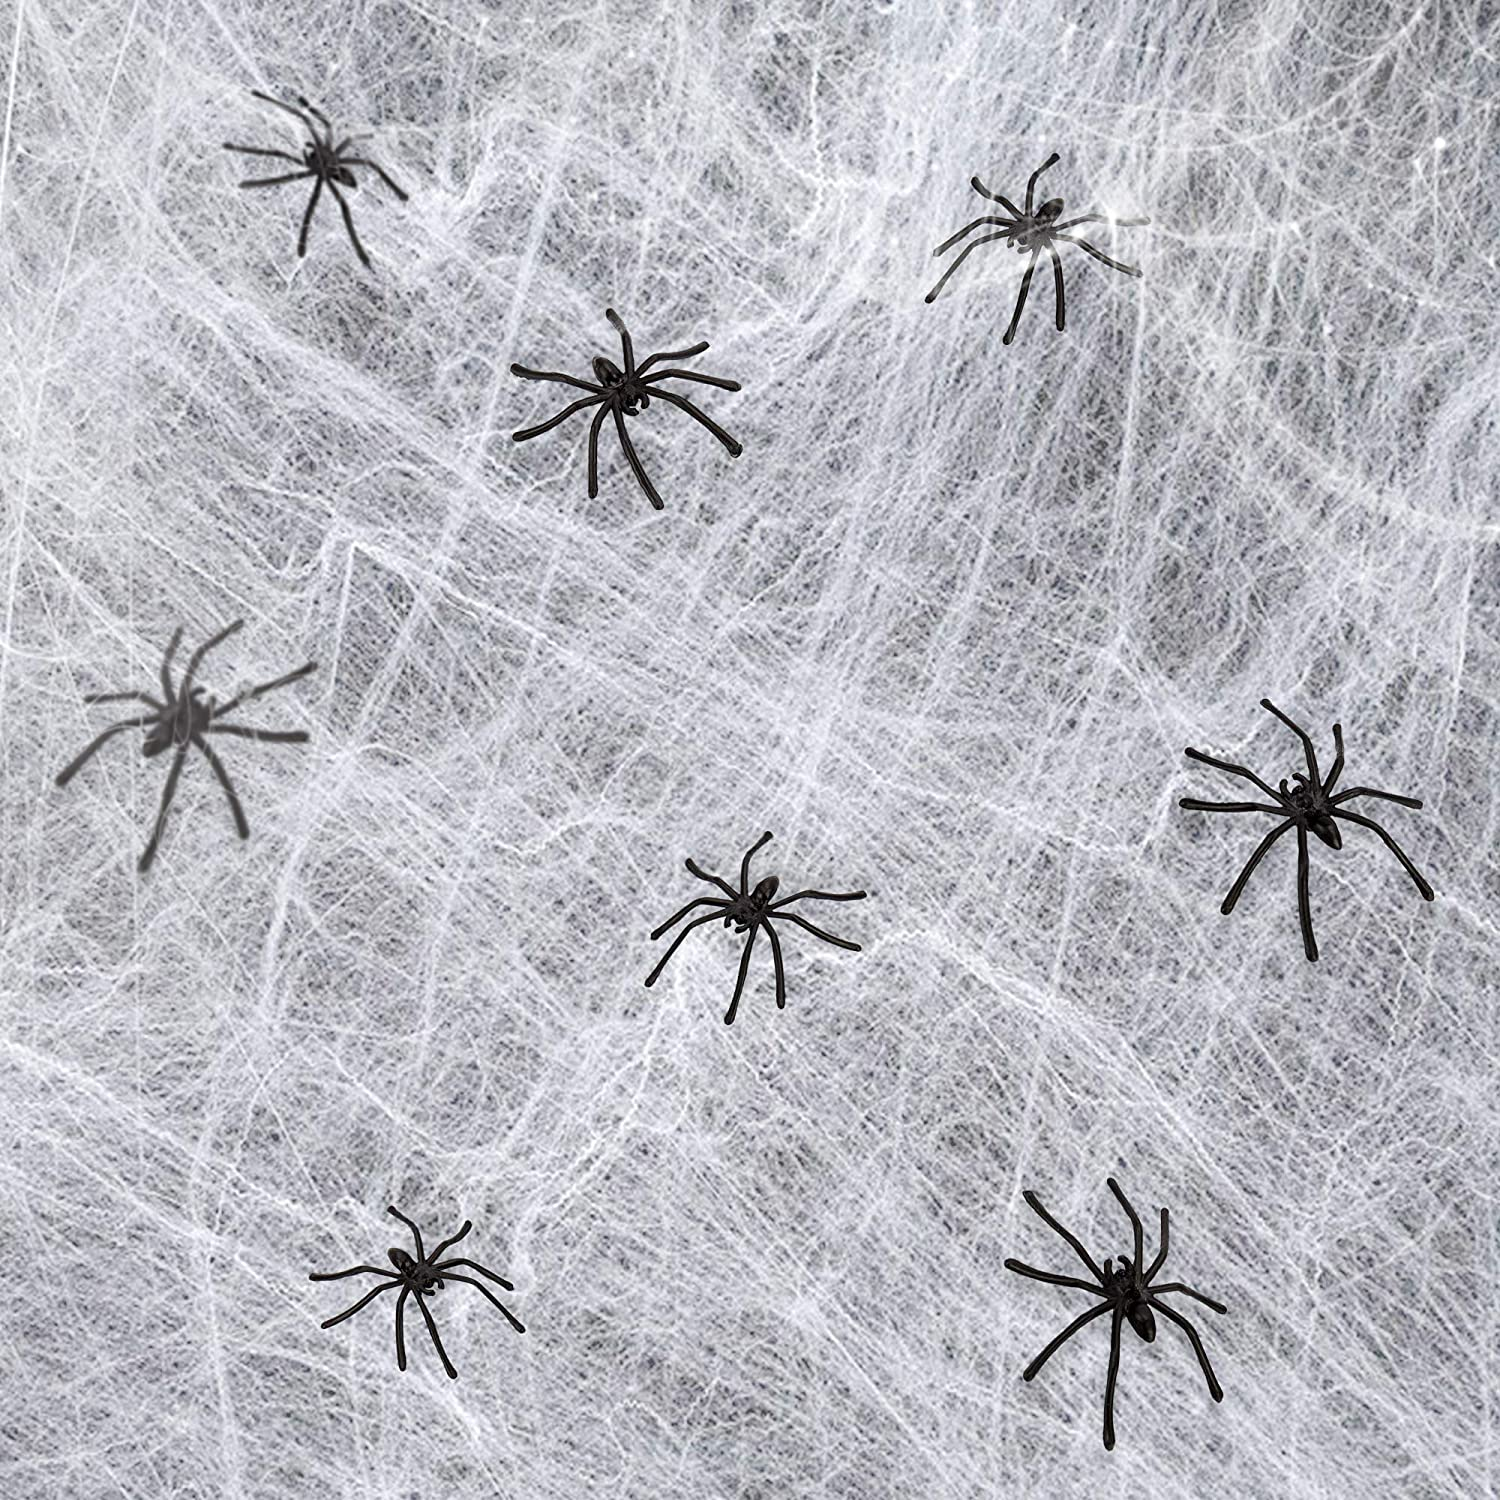 Prank Realistic Scary Spiders Toy for Kids Party Decorations obqo 150 Pieces Halloween Spooky Black Plastic Spiders for Halloween Party Decorations